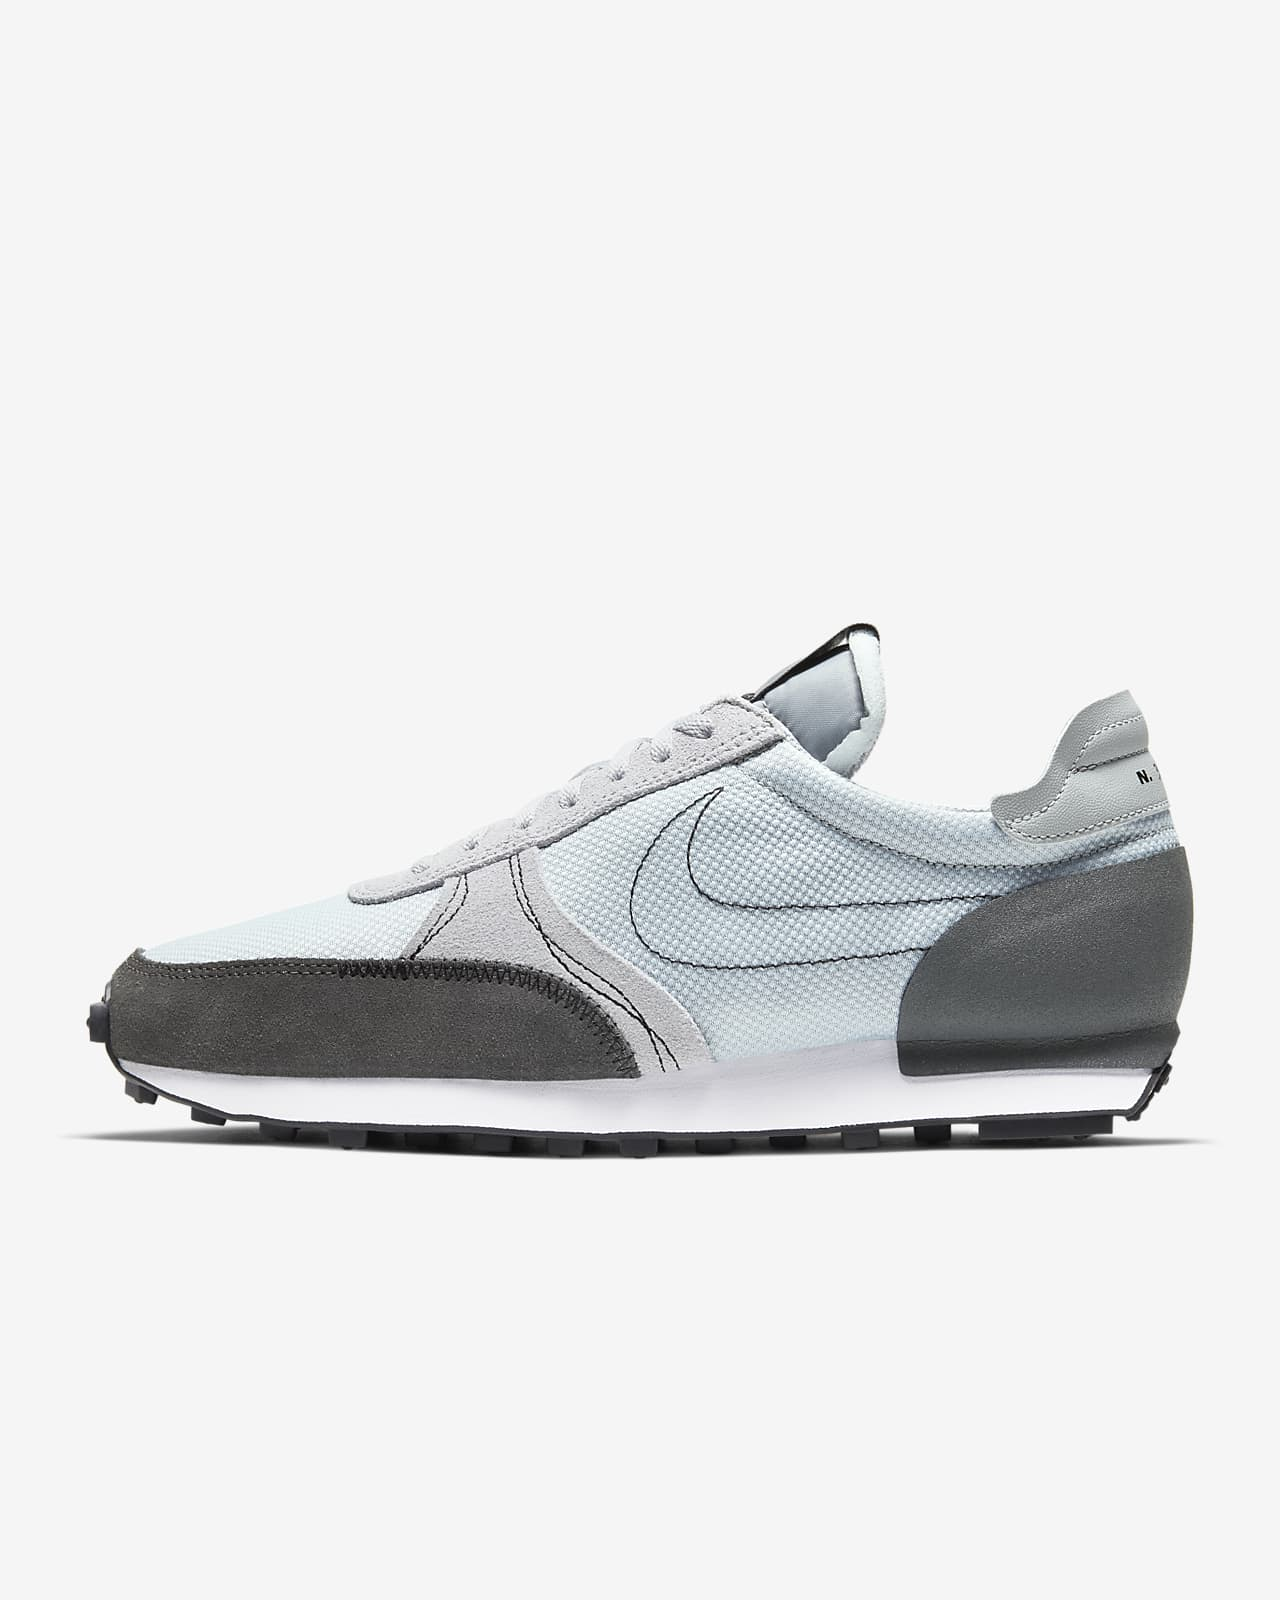 Chaussure Nike DBreak-Type pour Homme